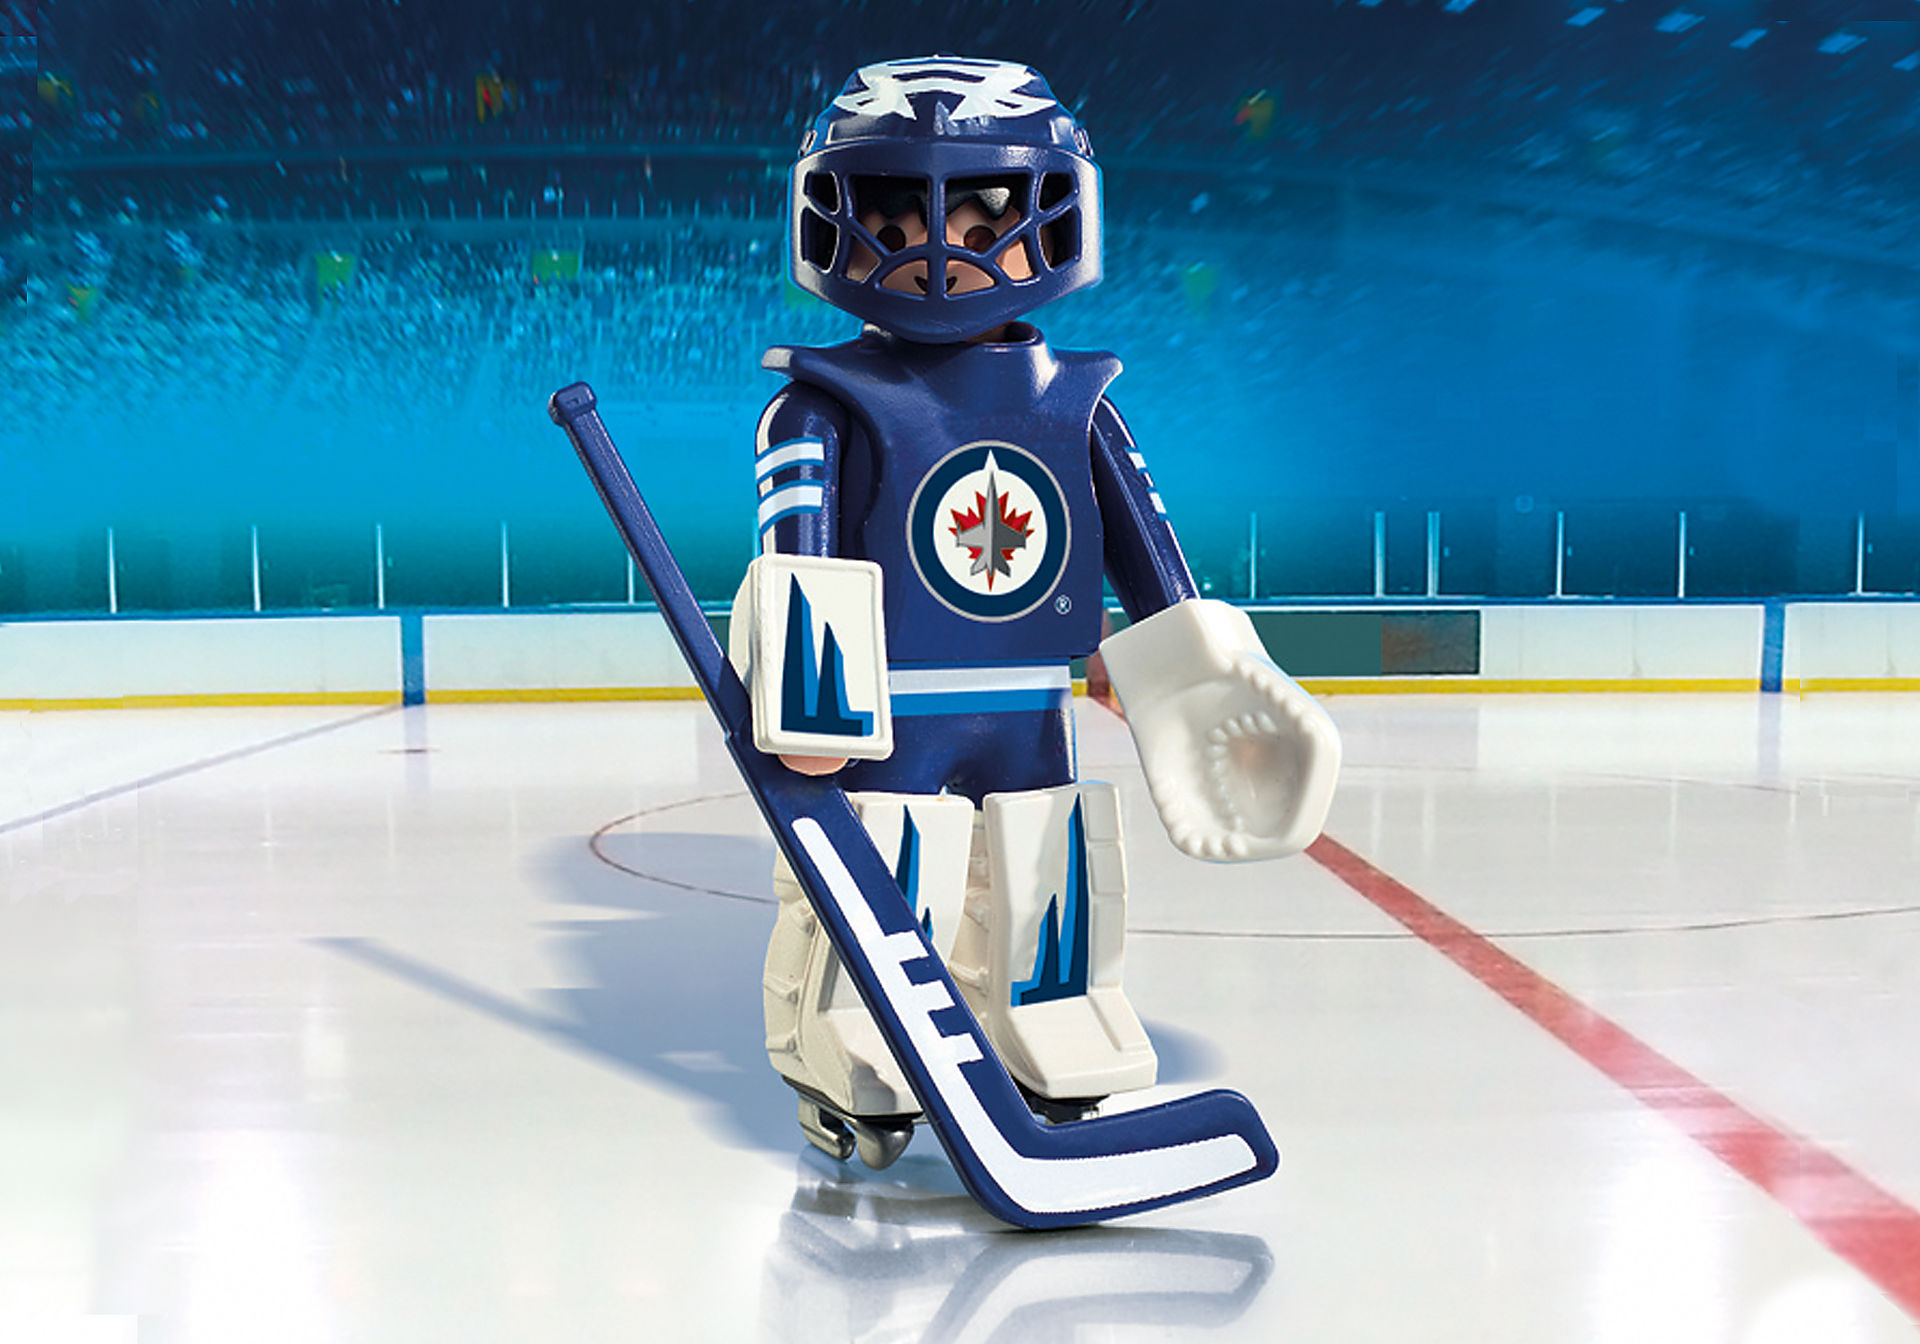 9020 NHL® Winnipeg Jets™ Goalie zoom image1